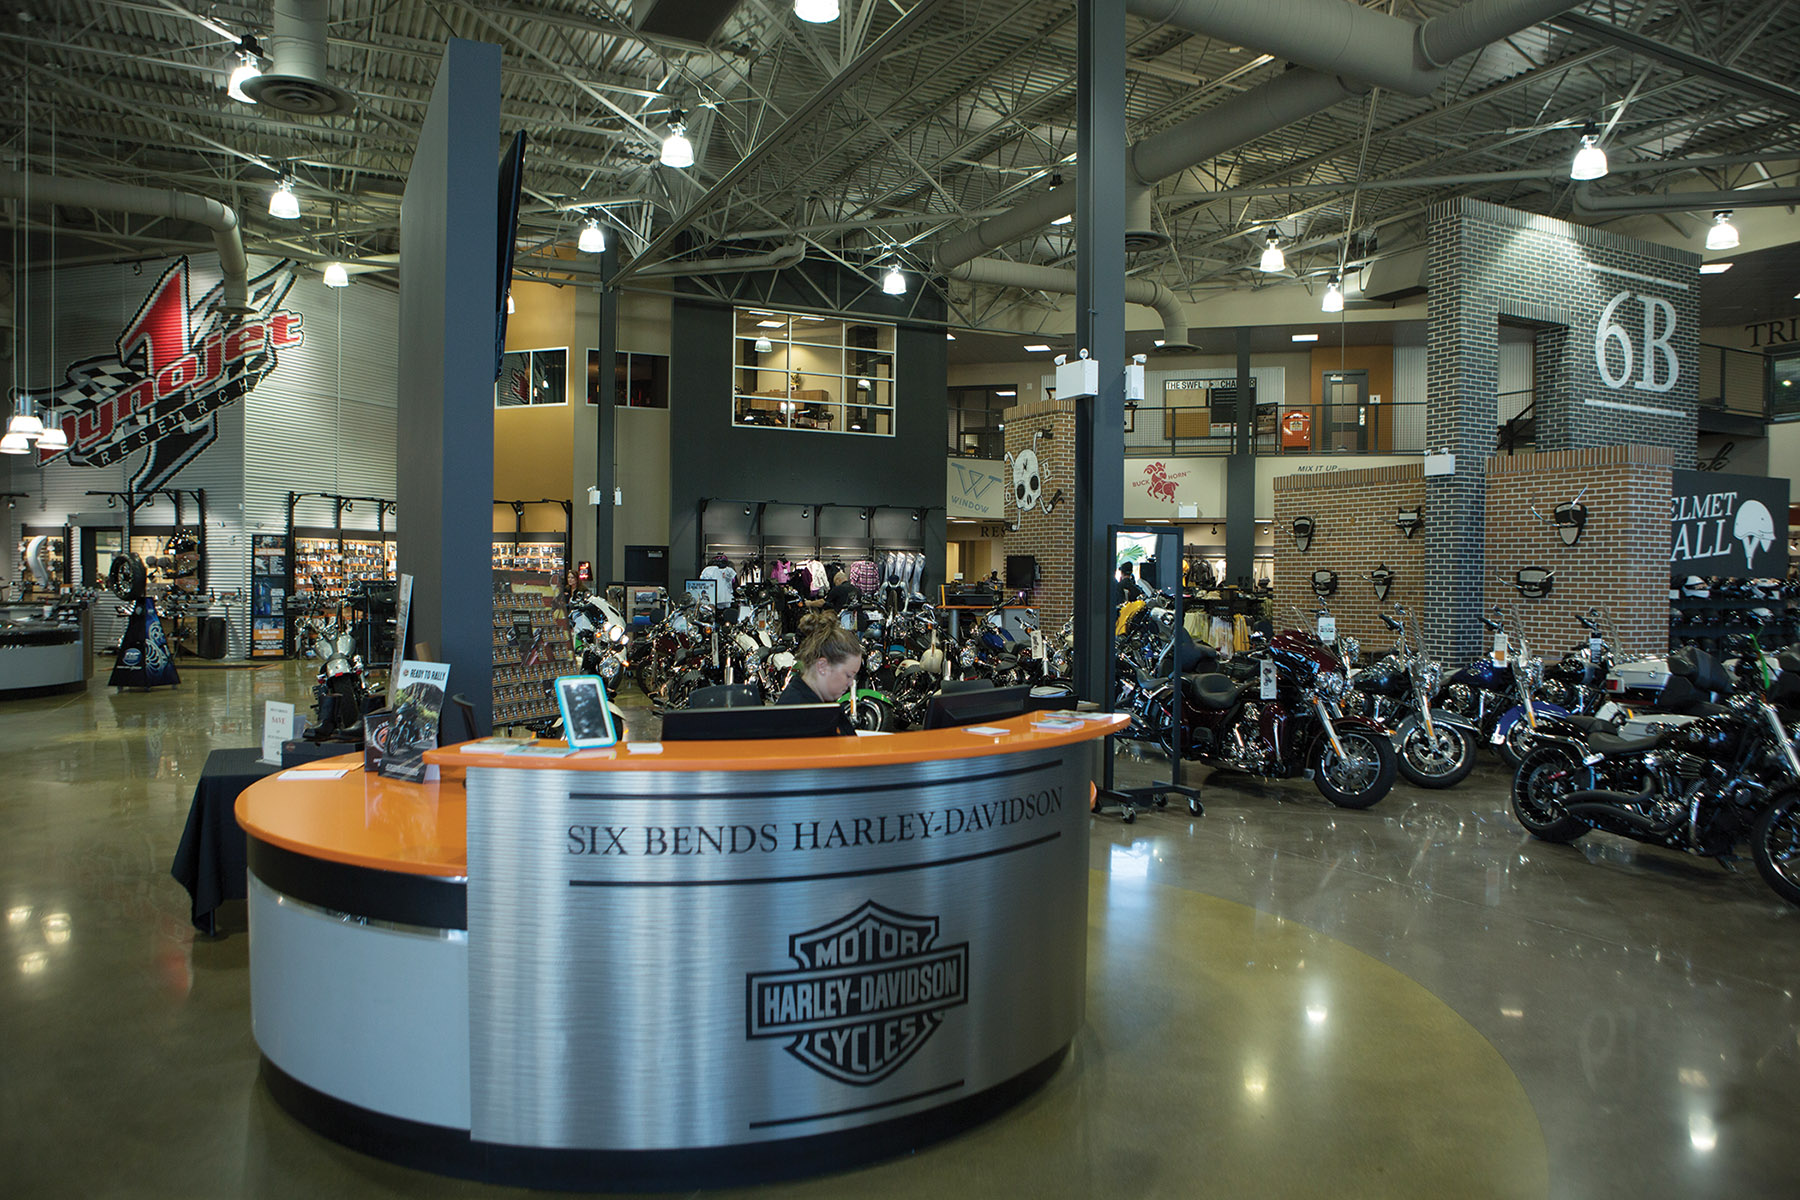 Easy Riding A Visit To Six Bends Harley Davidson Encompasses More